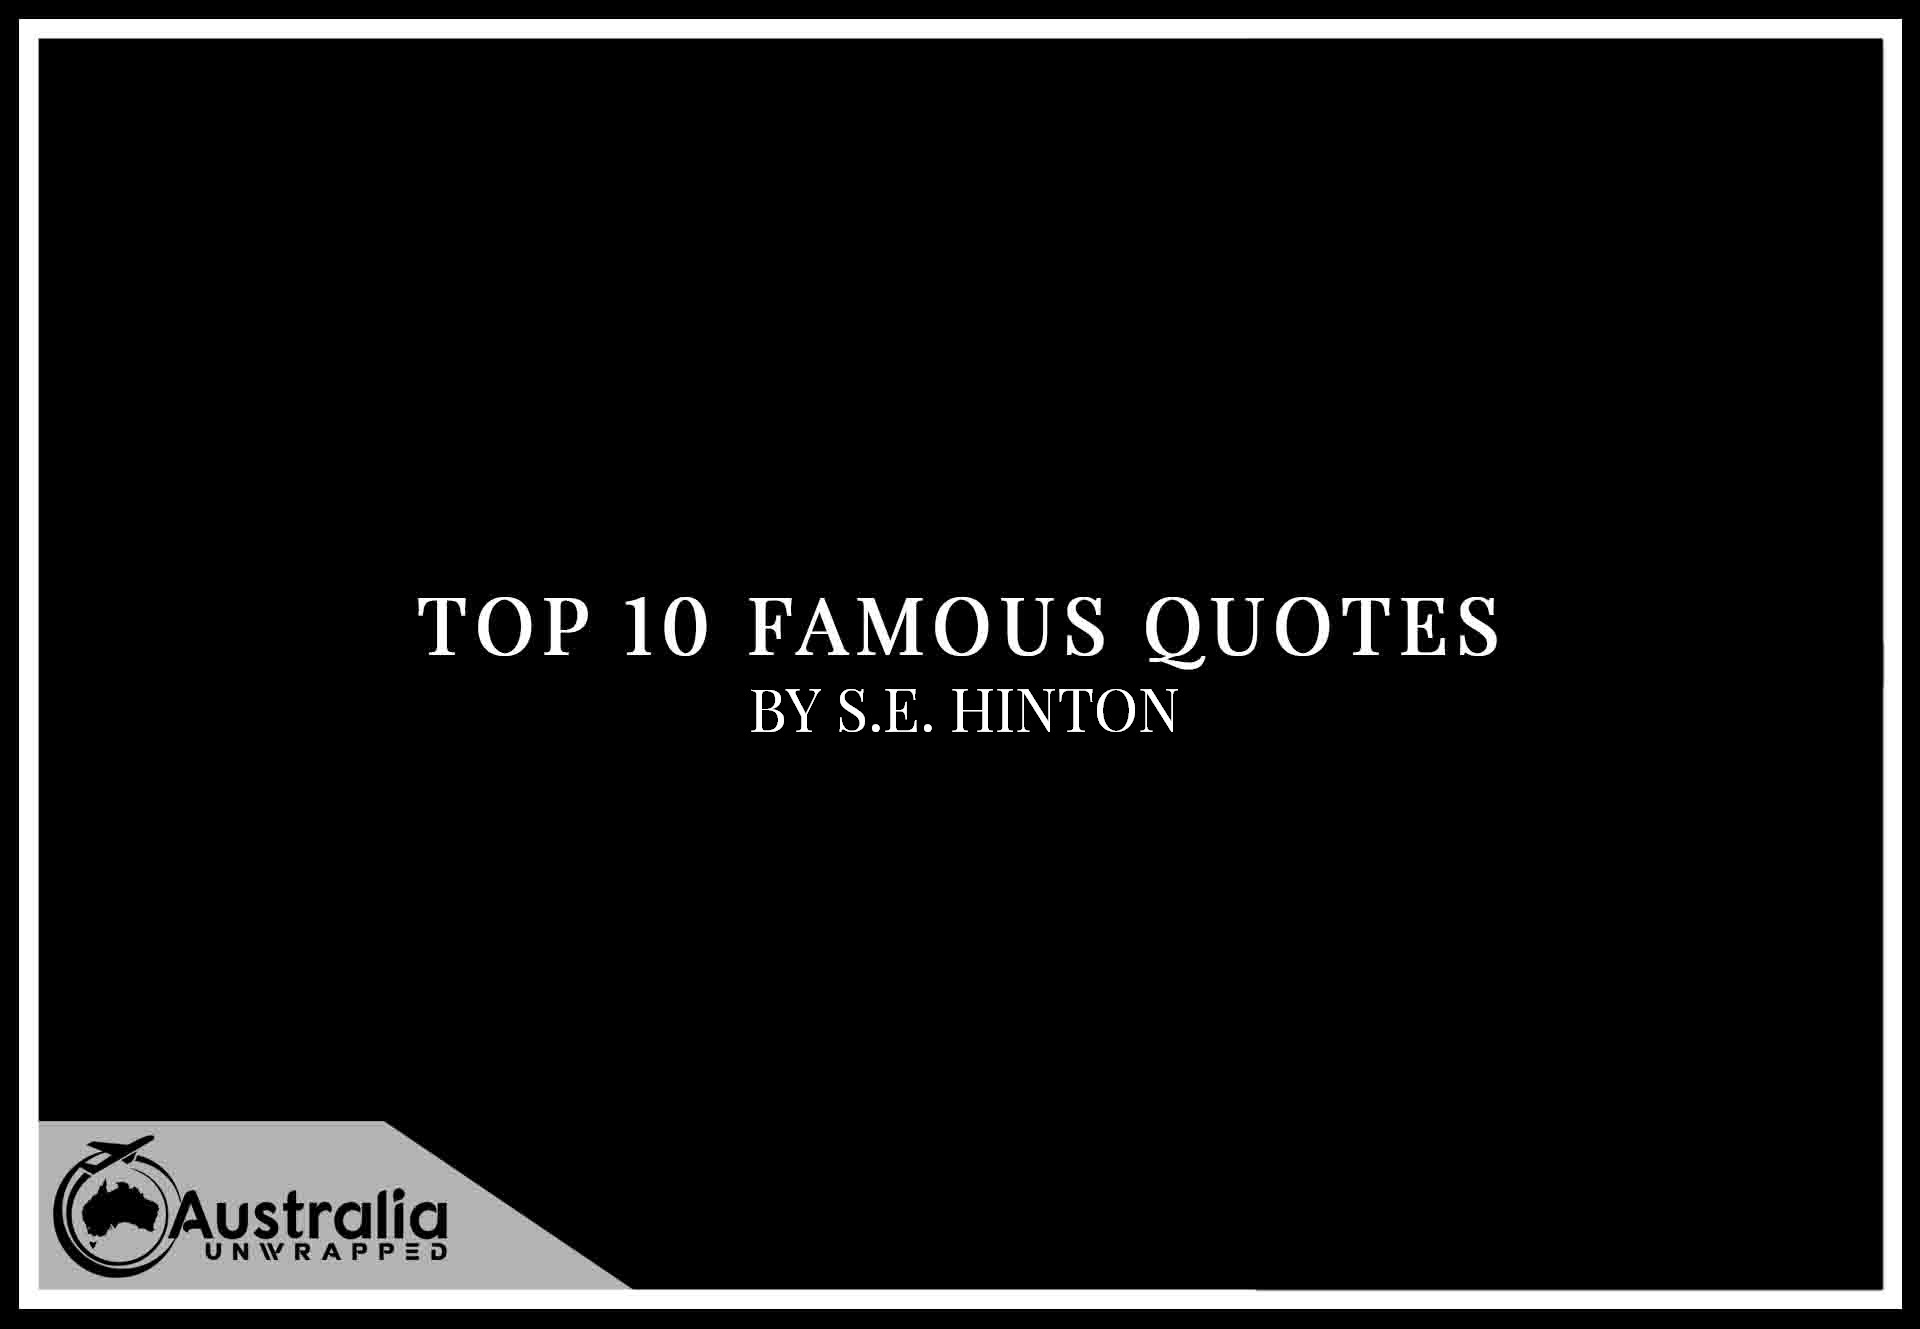 Top 10 Famous Quotes by Author S.E. Hinton